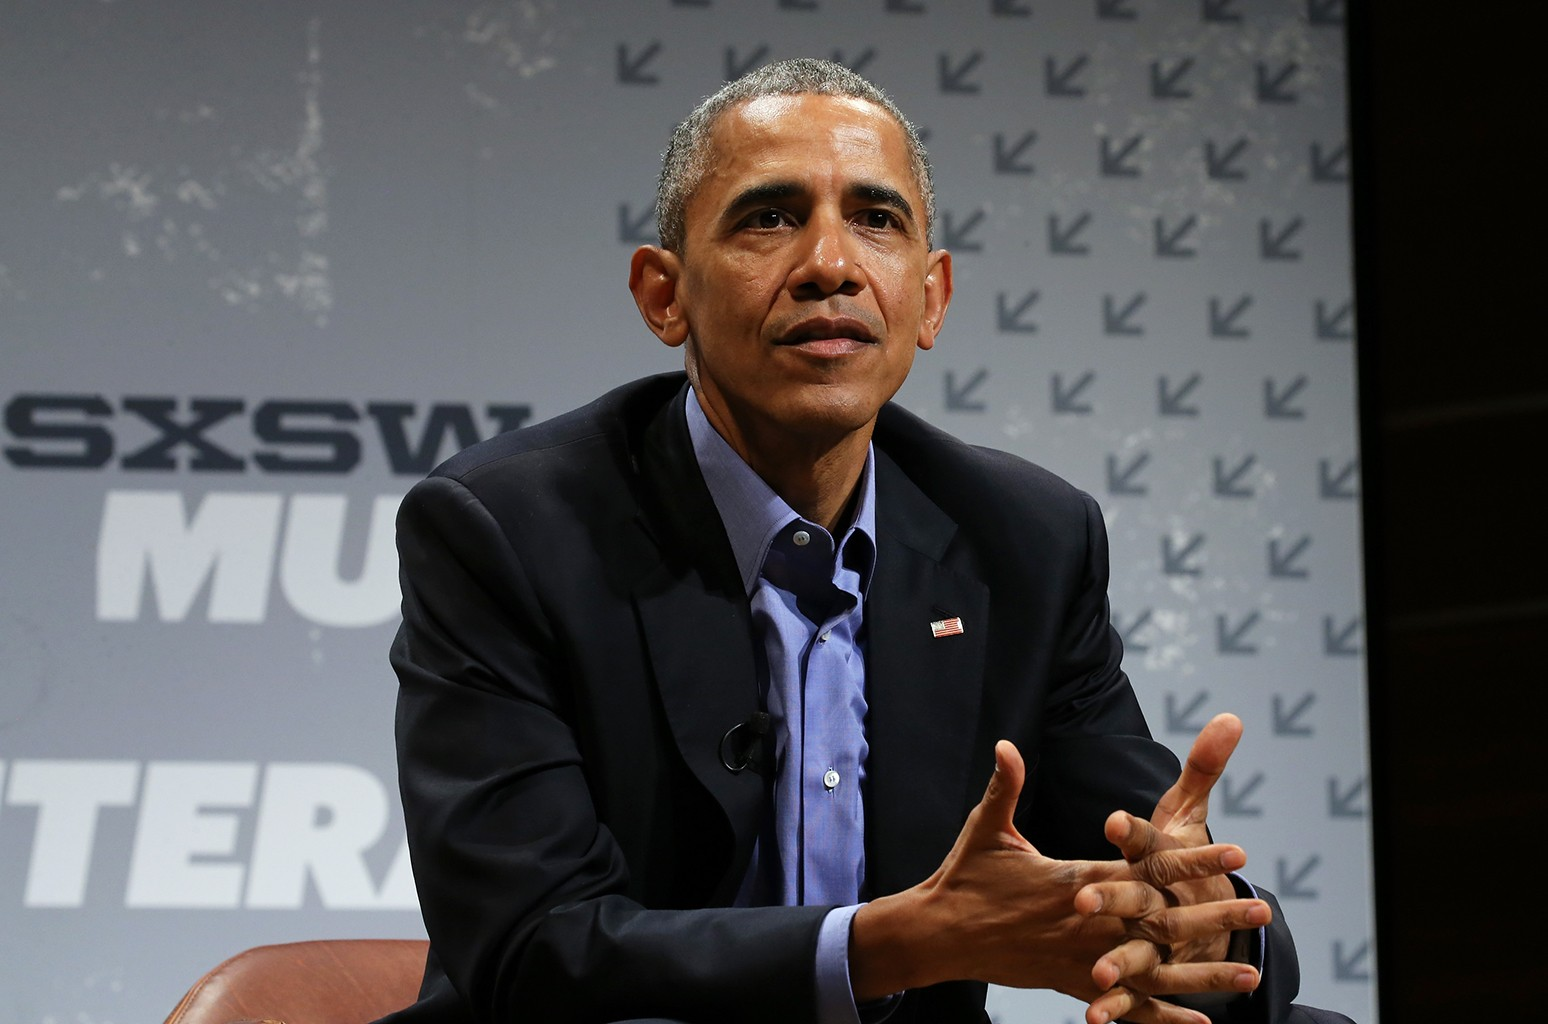 Barack Obama speaks at the opening Keynote during the 2016 SXSW Music, Film + Interactive Festival at Long Center on March 11, 2016 in Austin, Texas.